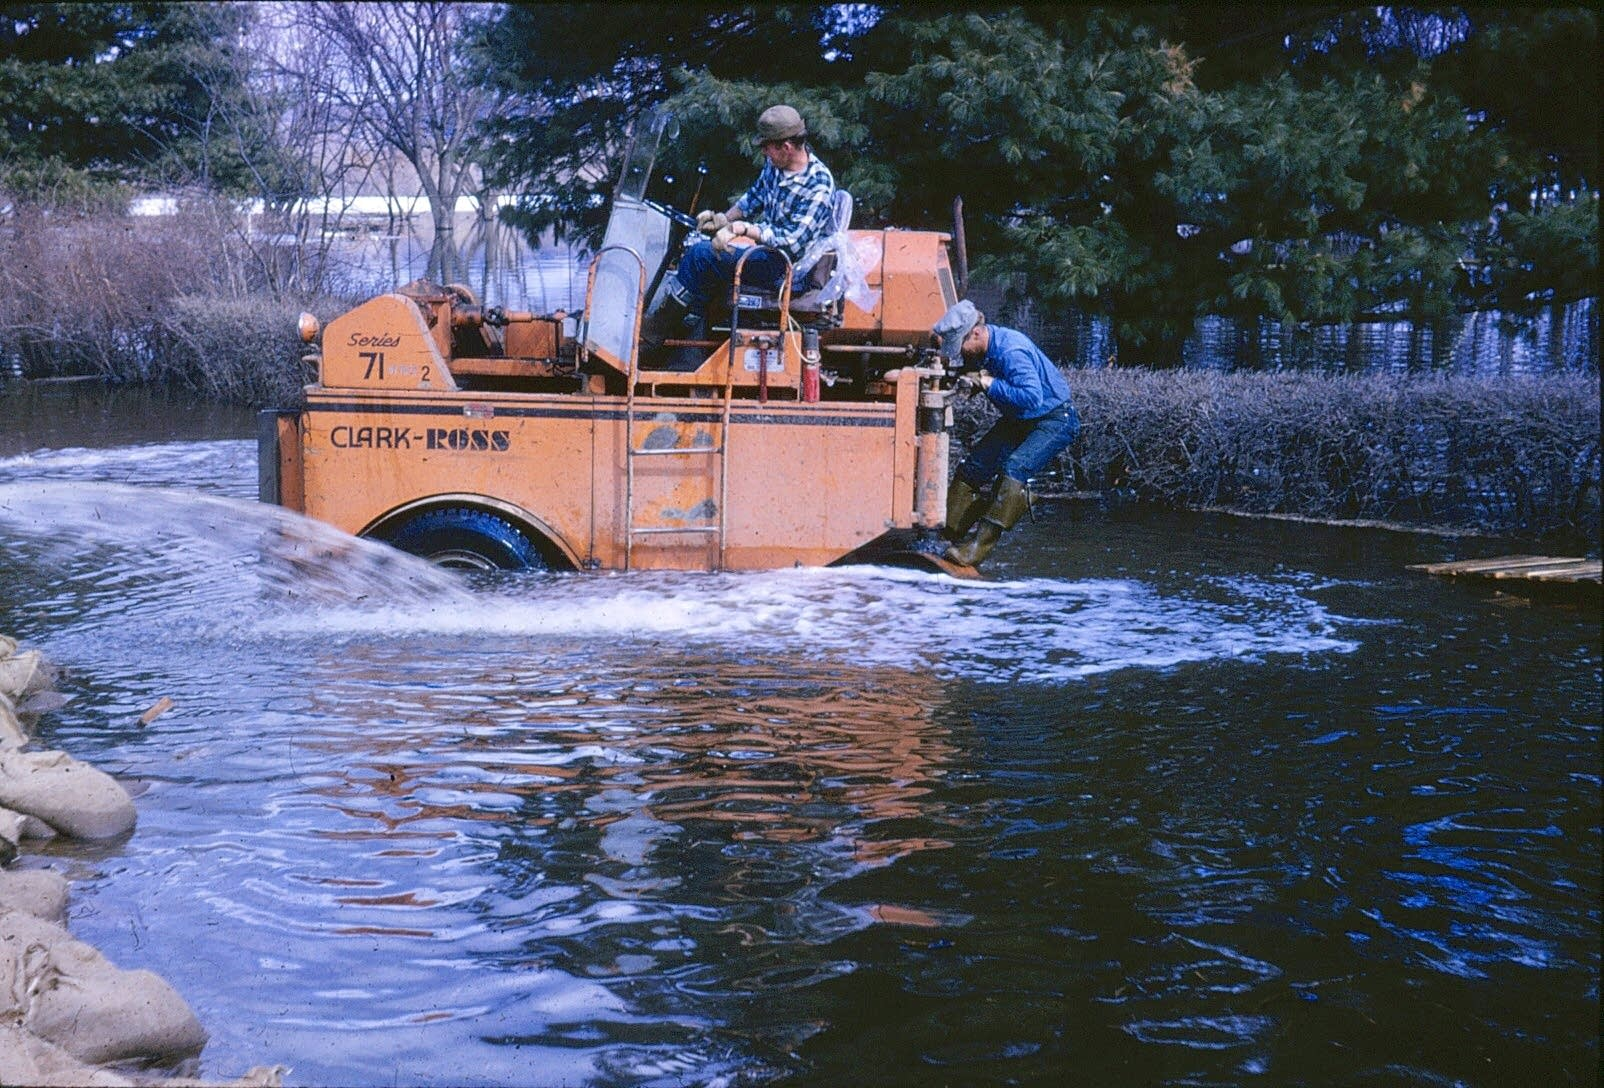 Two men ride a tractor through floodwaters.